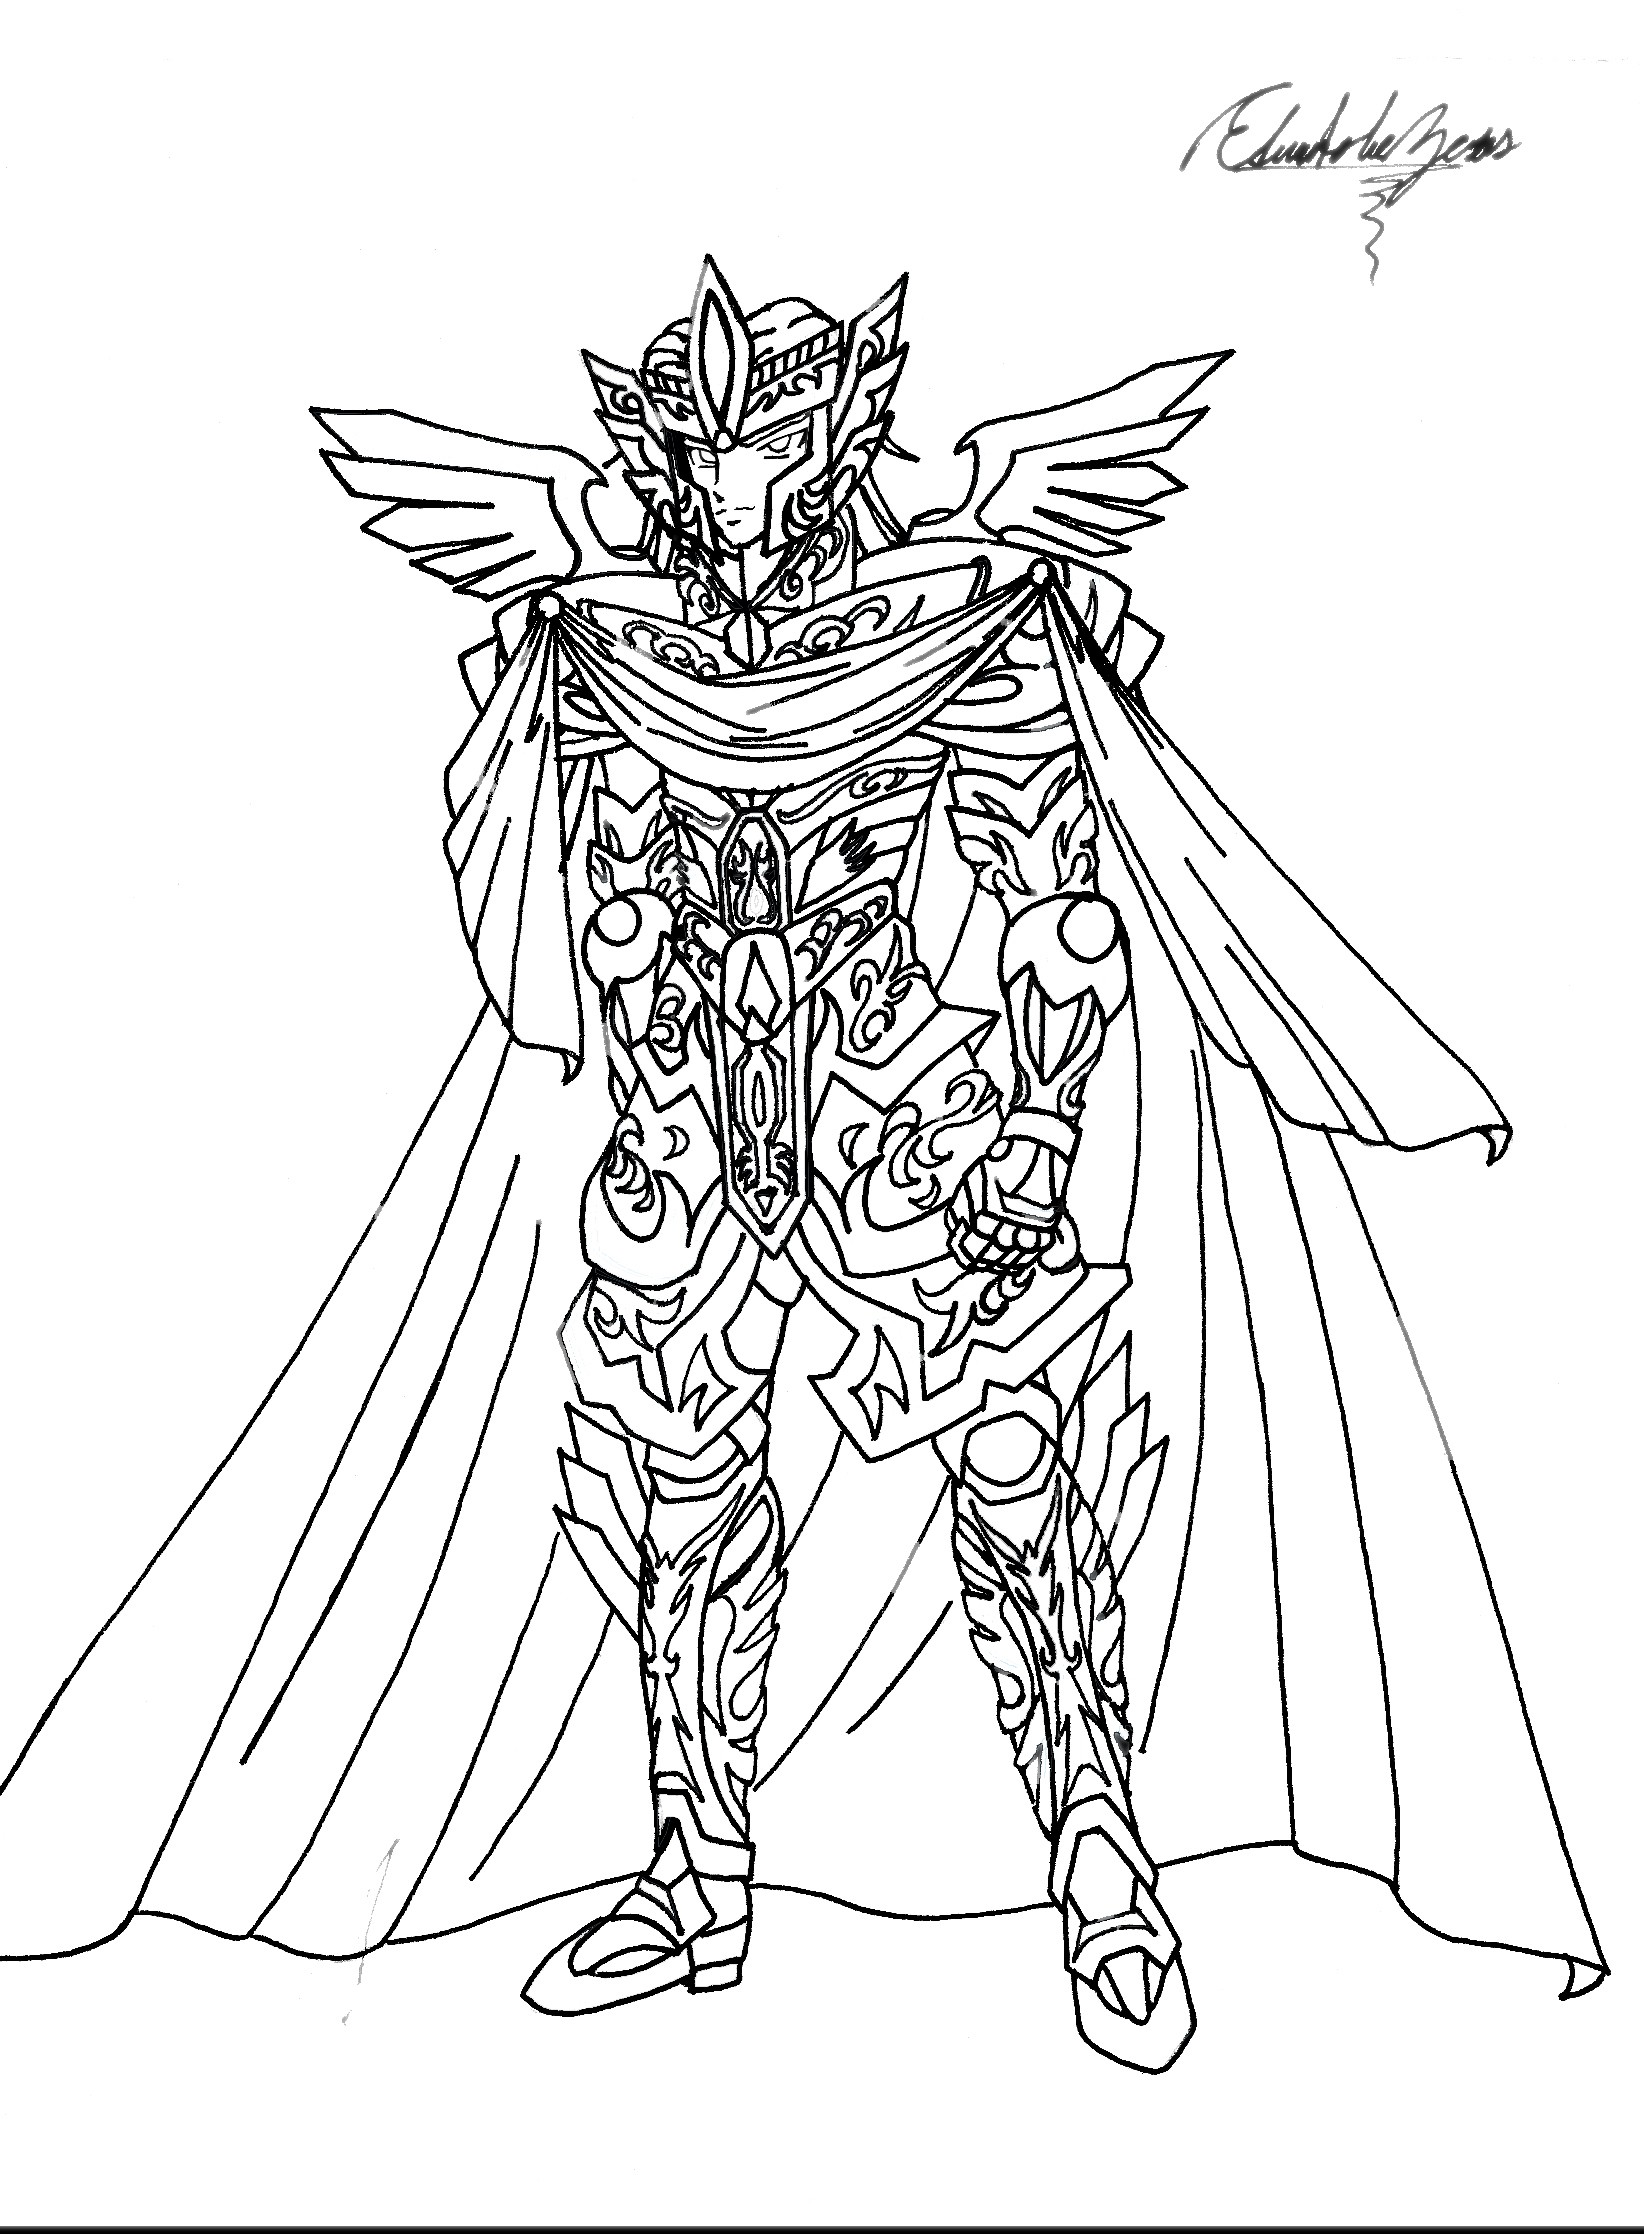 1644x2234 Zeus Coloring Pages Lovely Zeus Lord Of the Gods by Eduardodezeus